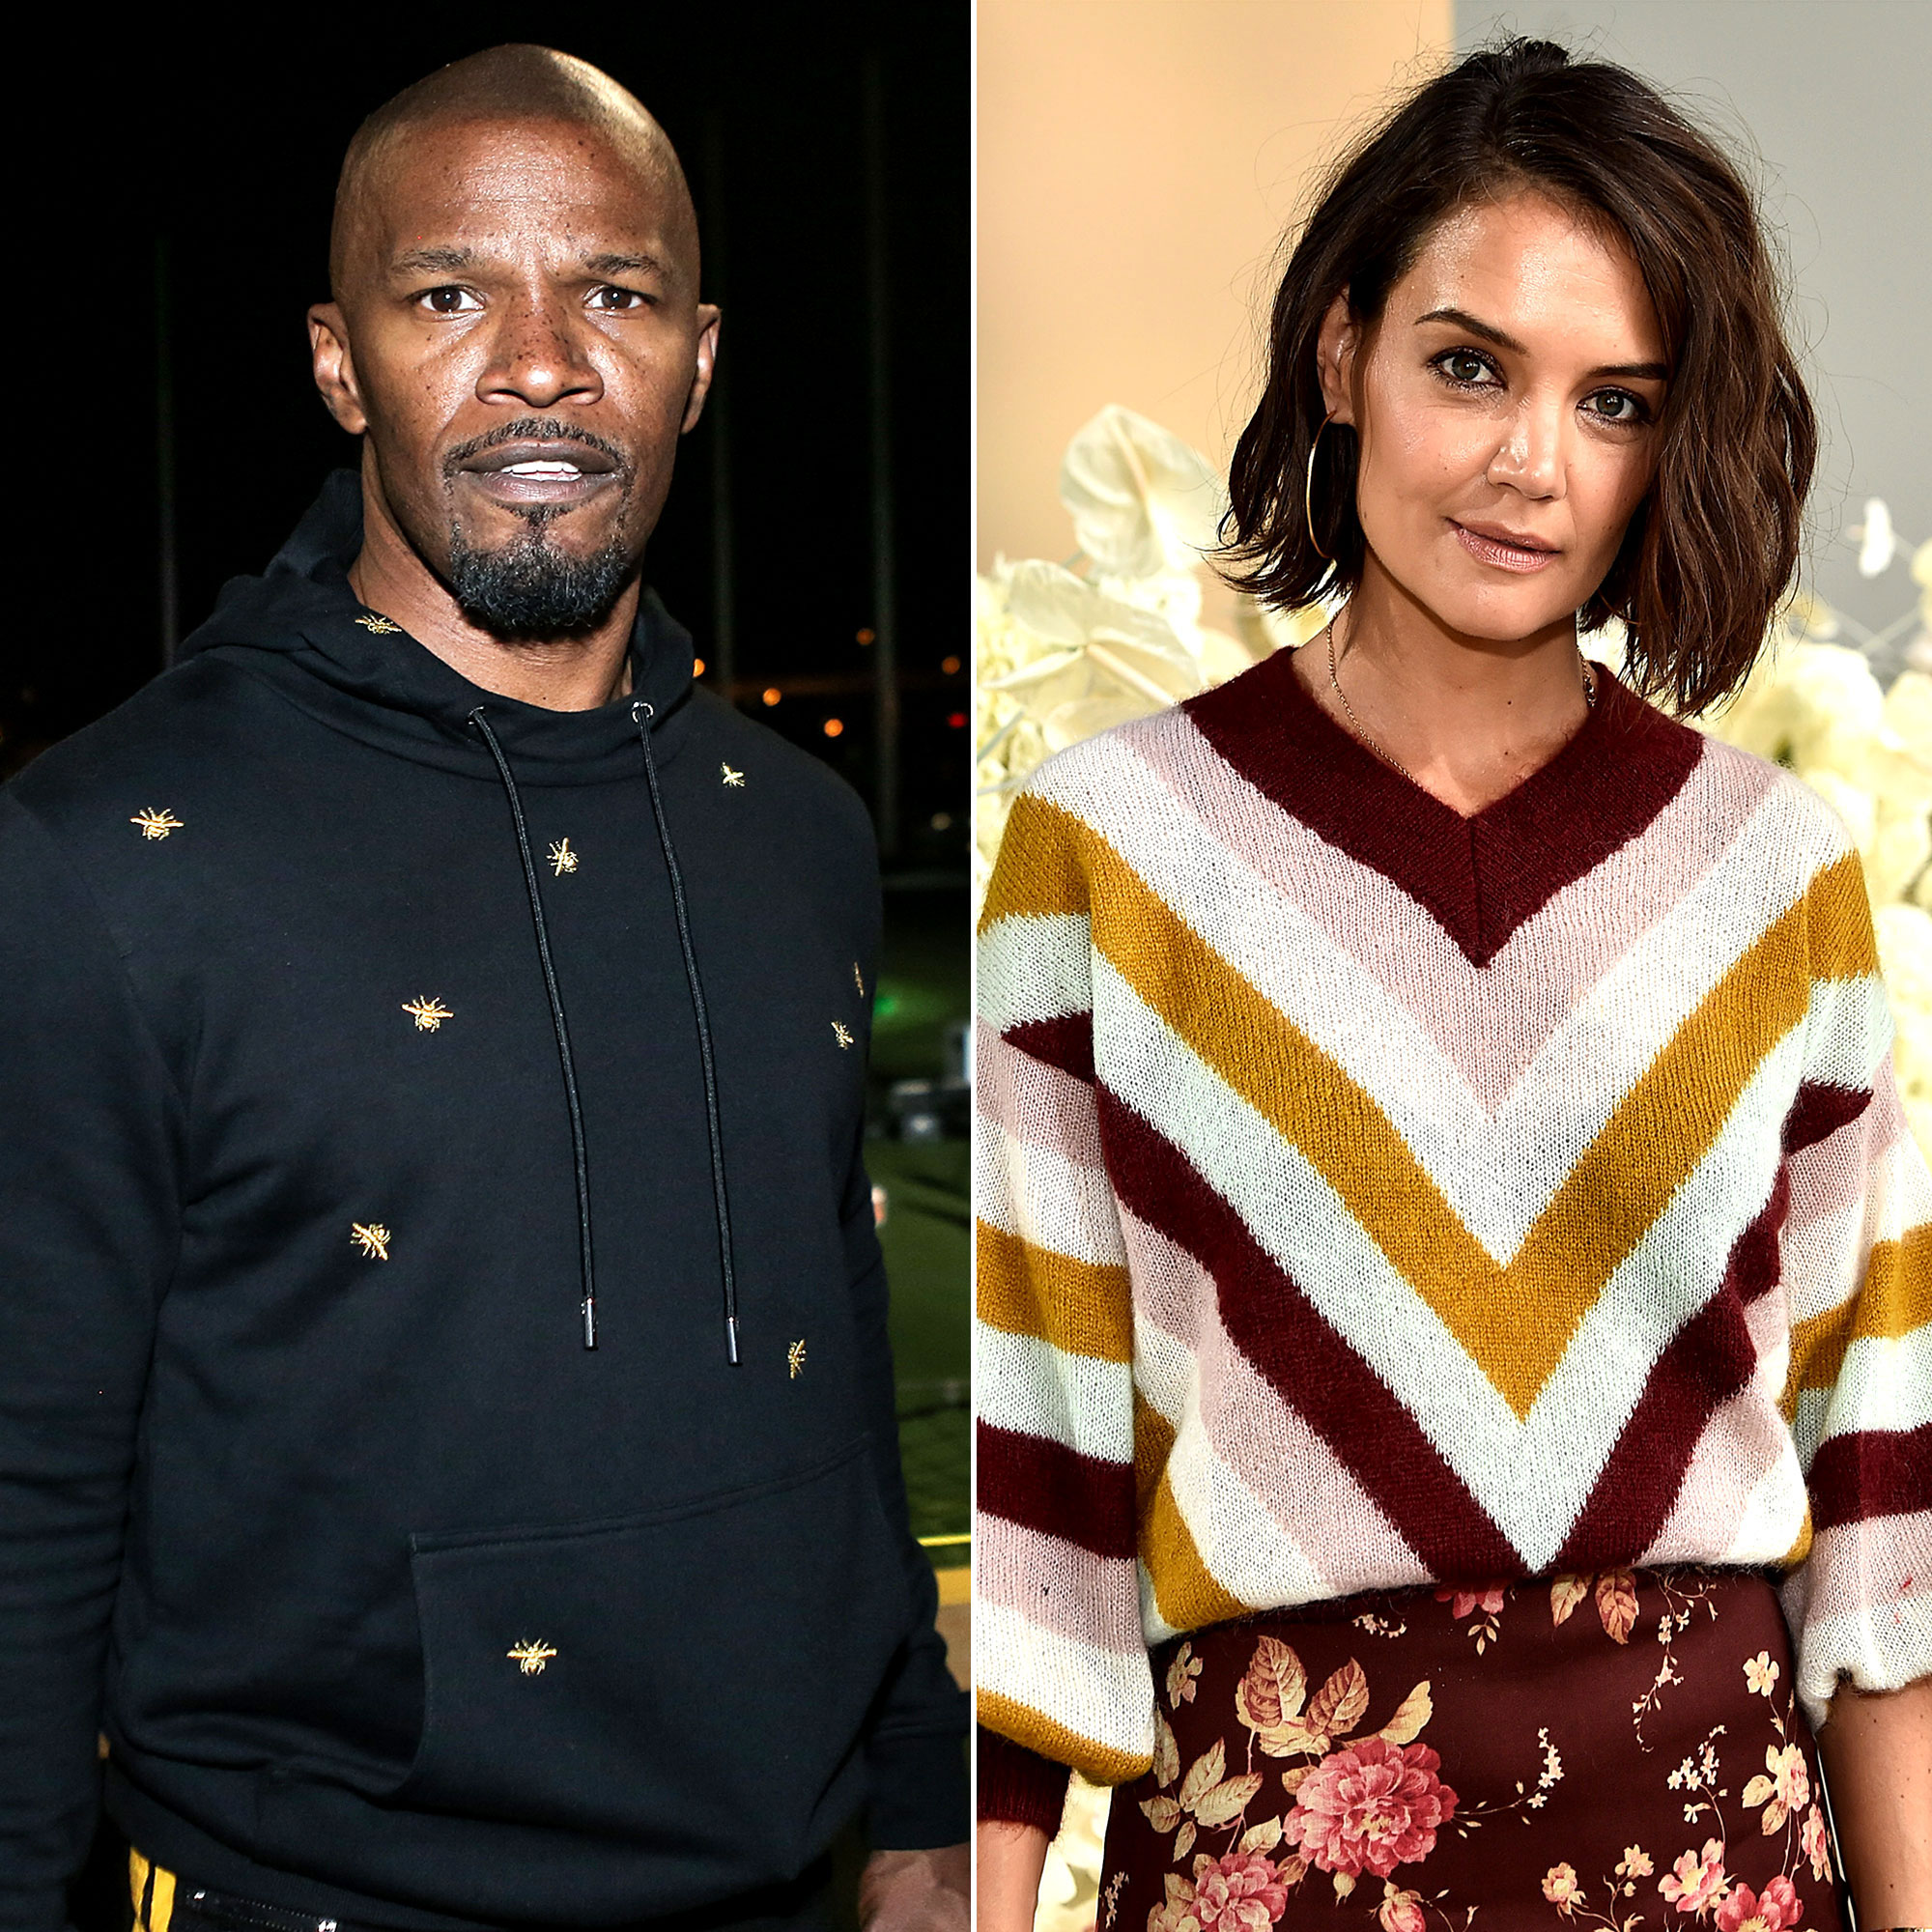 Katie Holmes Jamie Foxx Relationship Timeline Romantic Walk Split Speculation - The pair squashed breakup rumors one month later, when they were seen on a romantic stroll in New York City. Holmes and Foxx braved the chilly weather in long coats and hats as they walked through Central Park before heading to the Metropolitan Museum of Art.